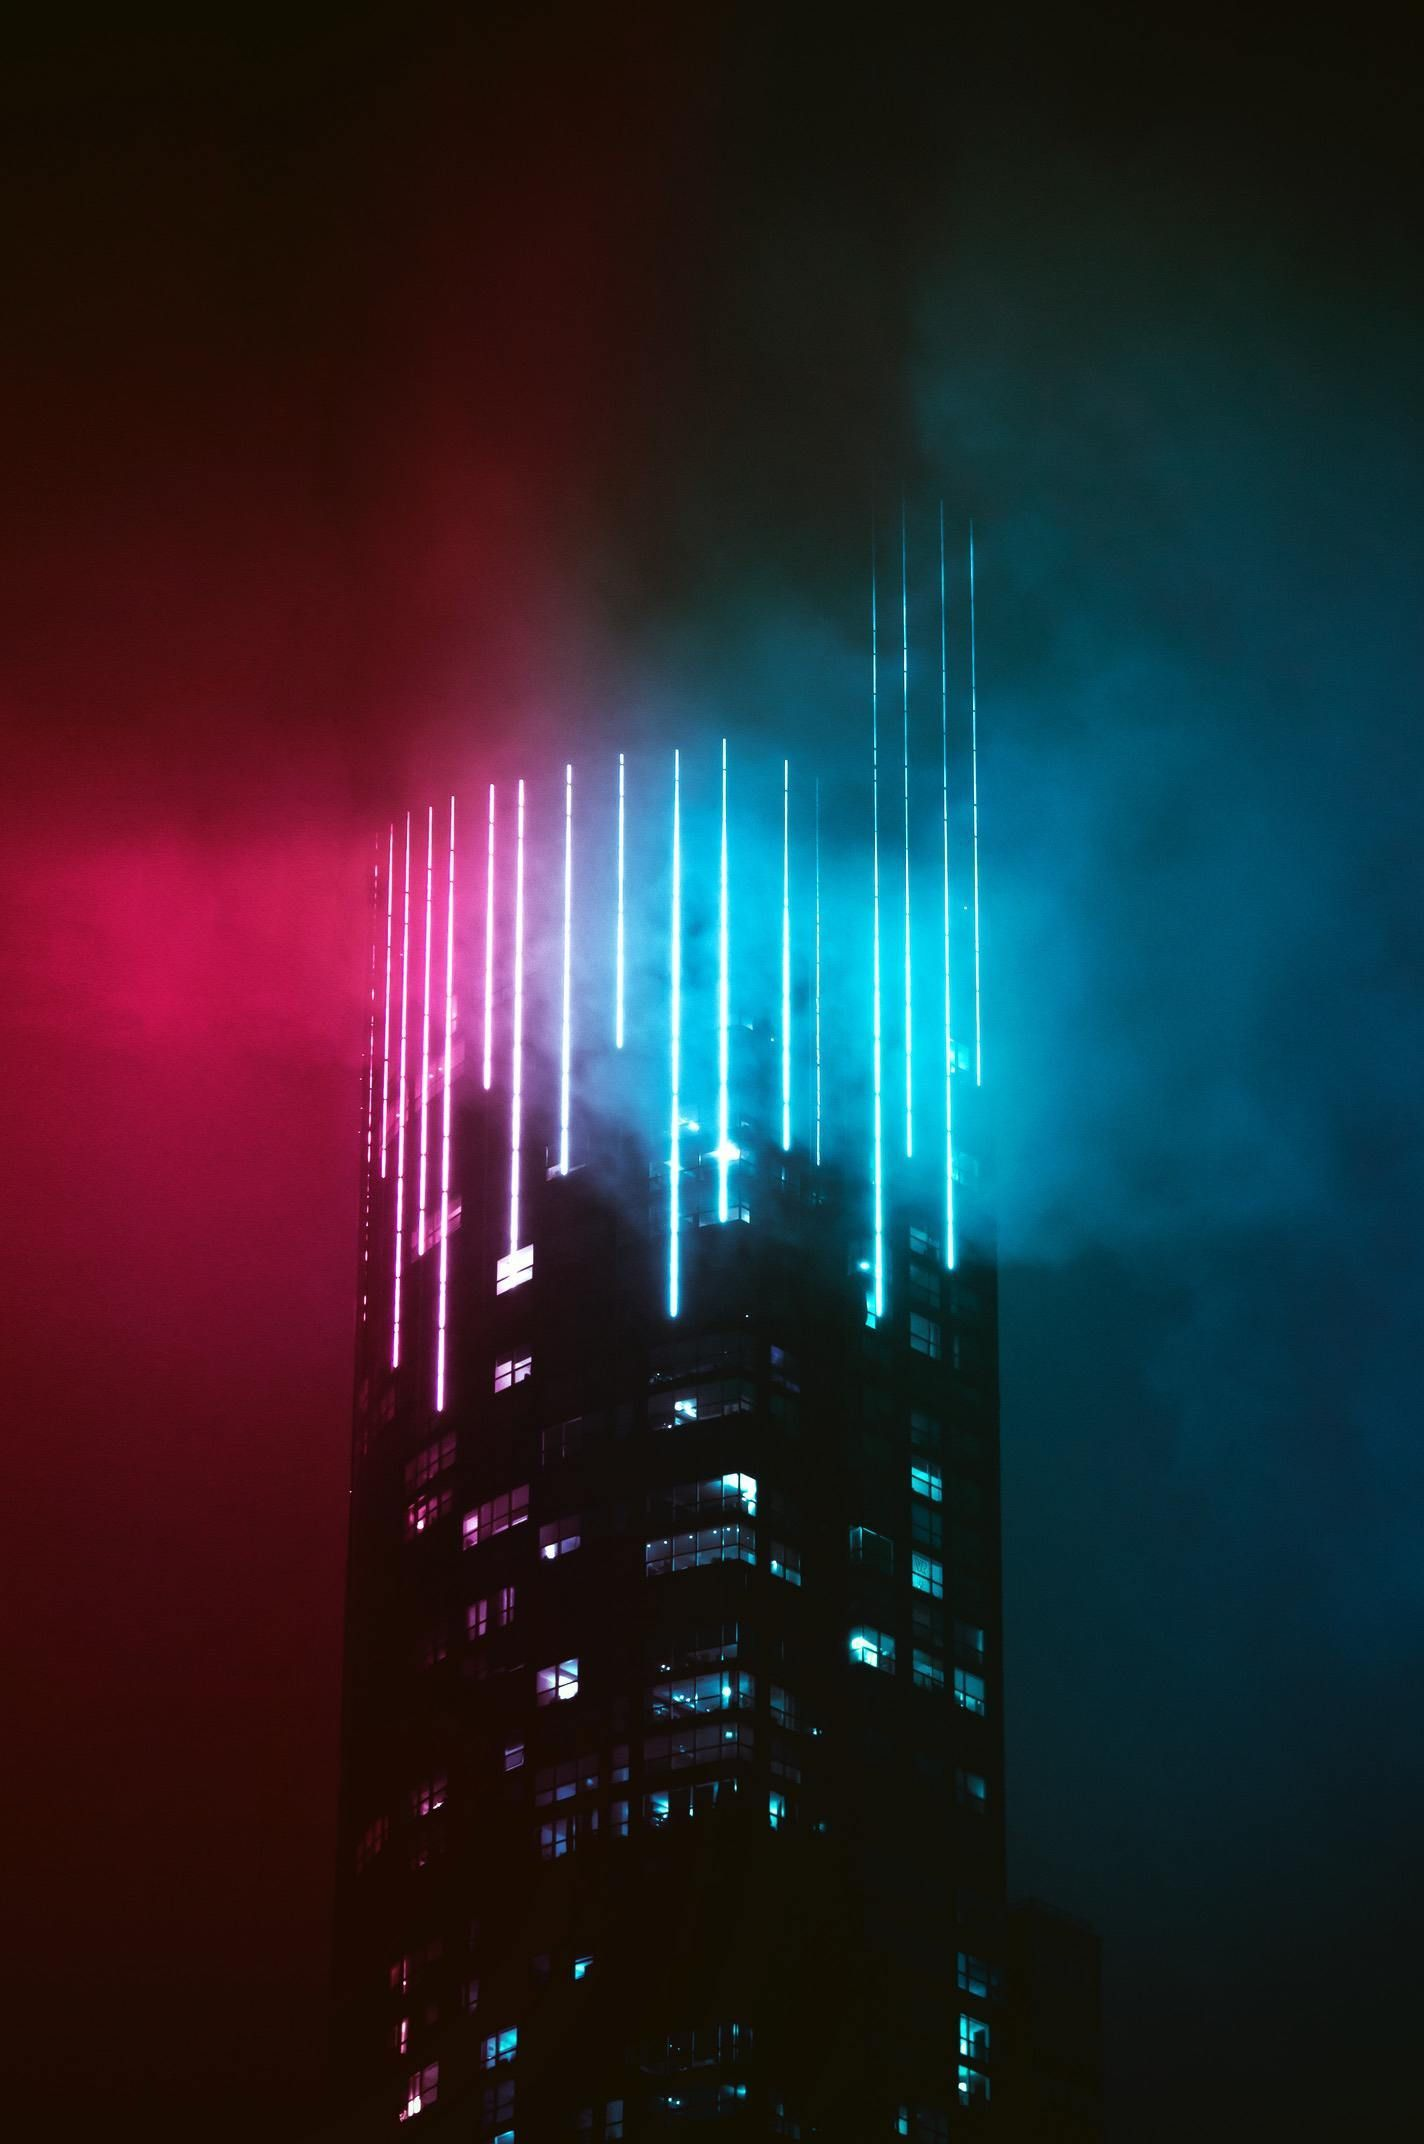 50 Free Trendy Neon Wallpapers For iPhone (HD Download